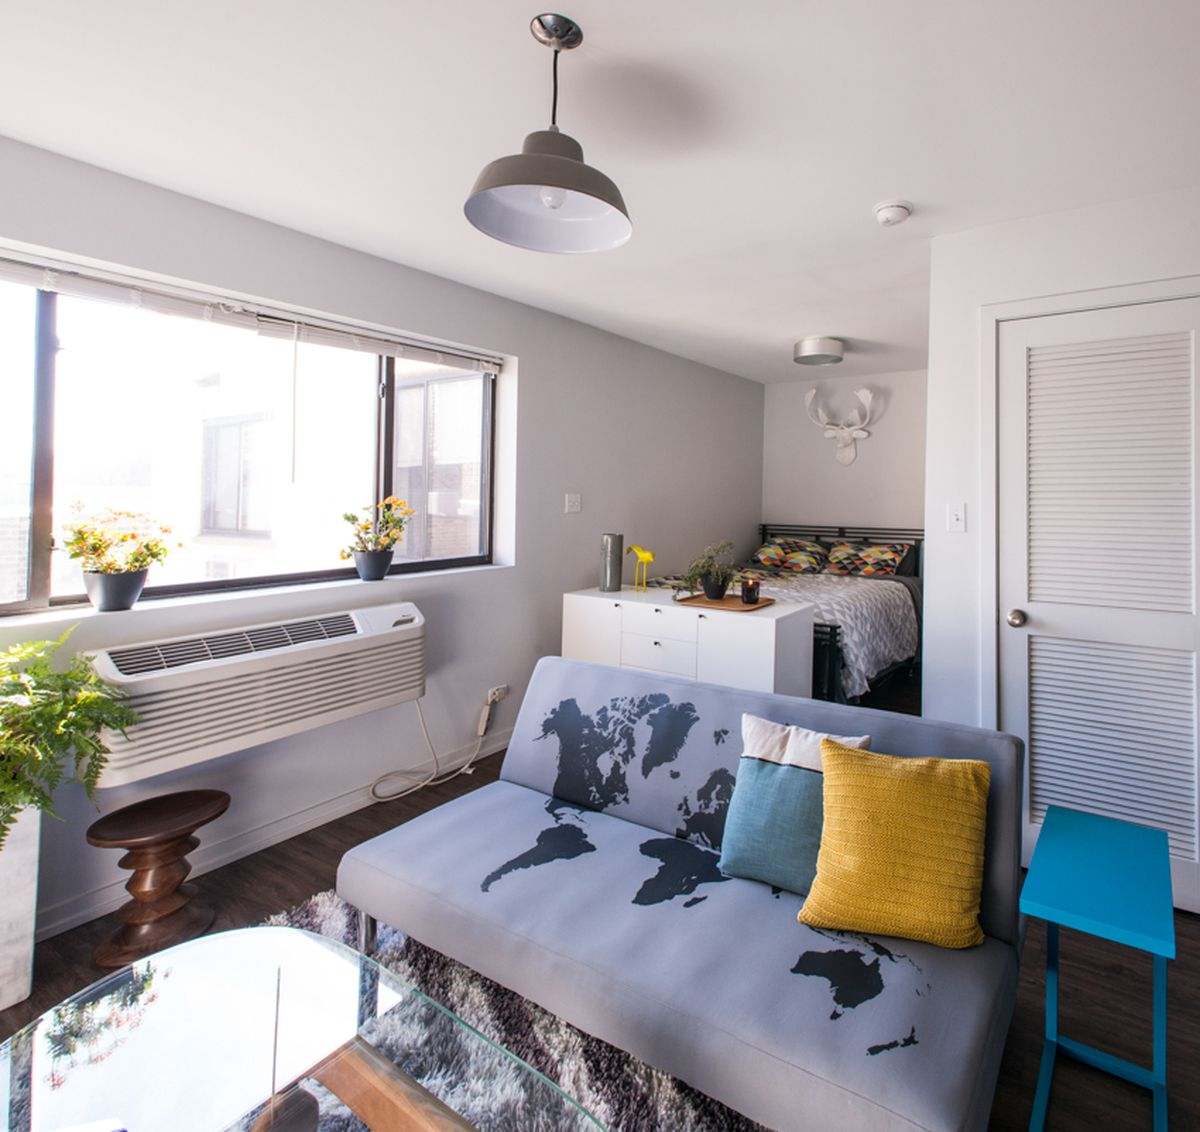 How to Live Large in a 500 Square Foot Studio Apartment - Curbed Chicago